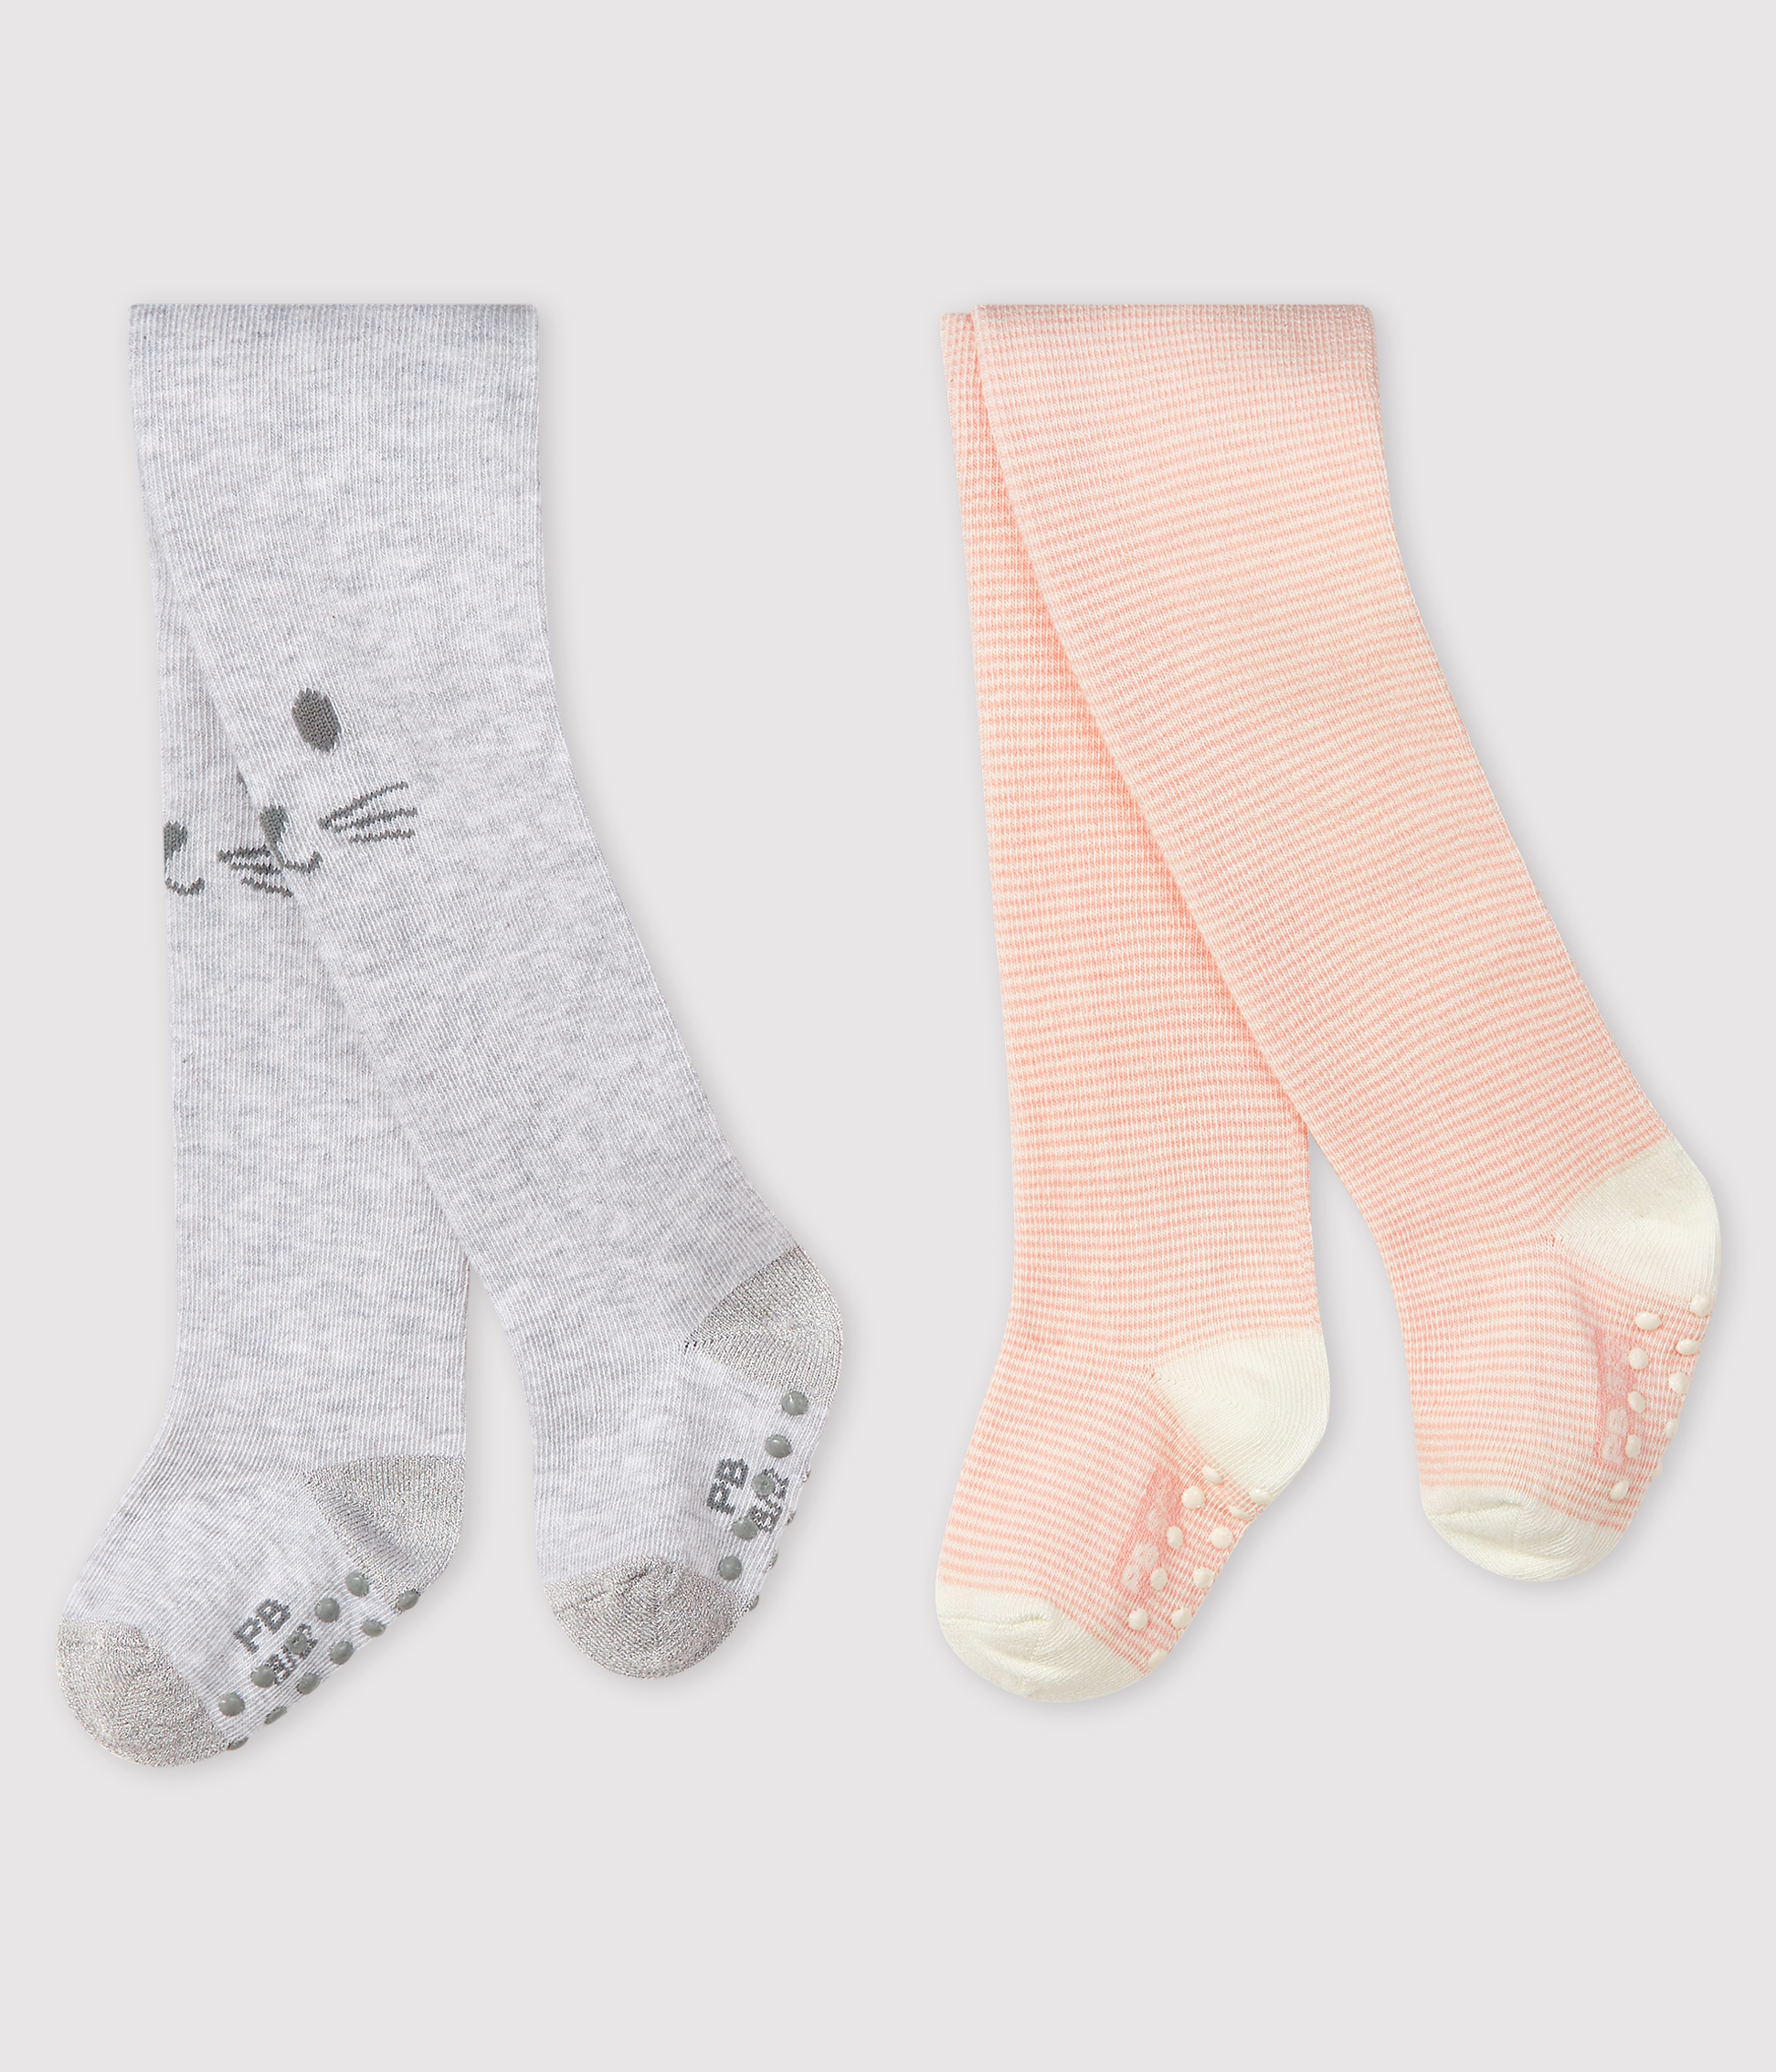 Pack of 2 pairs of baby tights